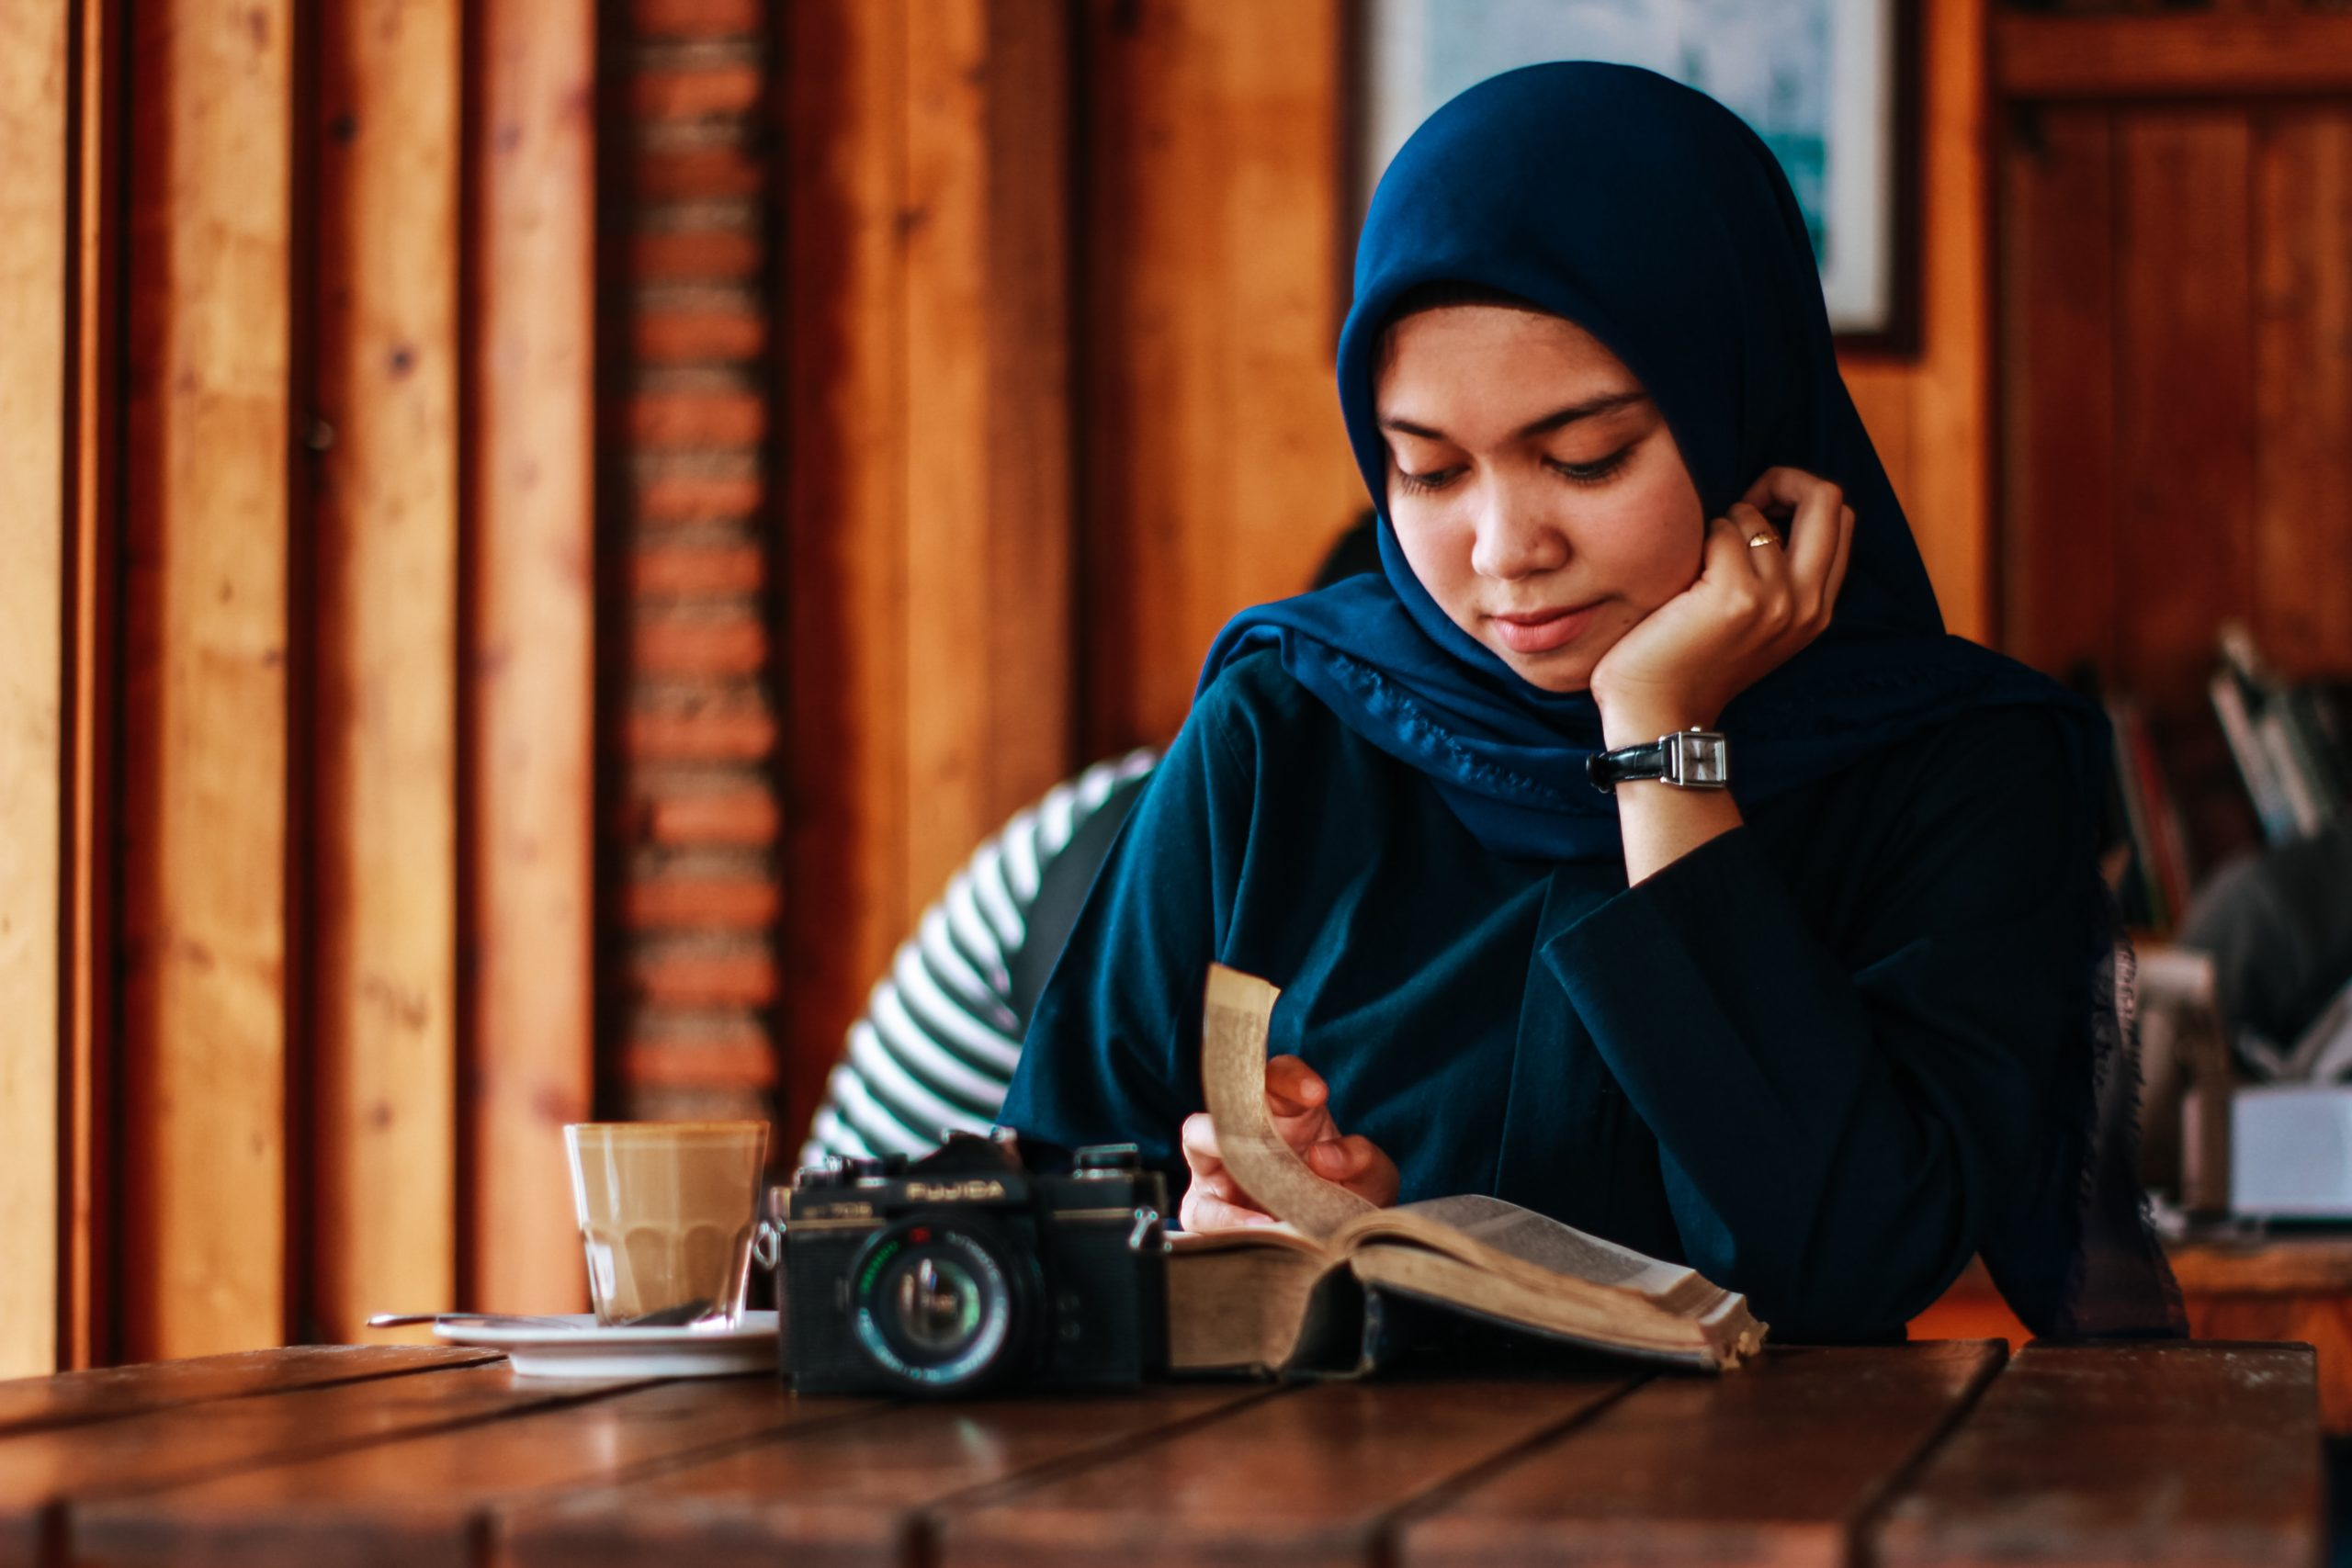 A lady in a hijab reading a book in a cafe